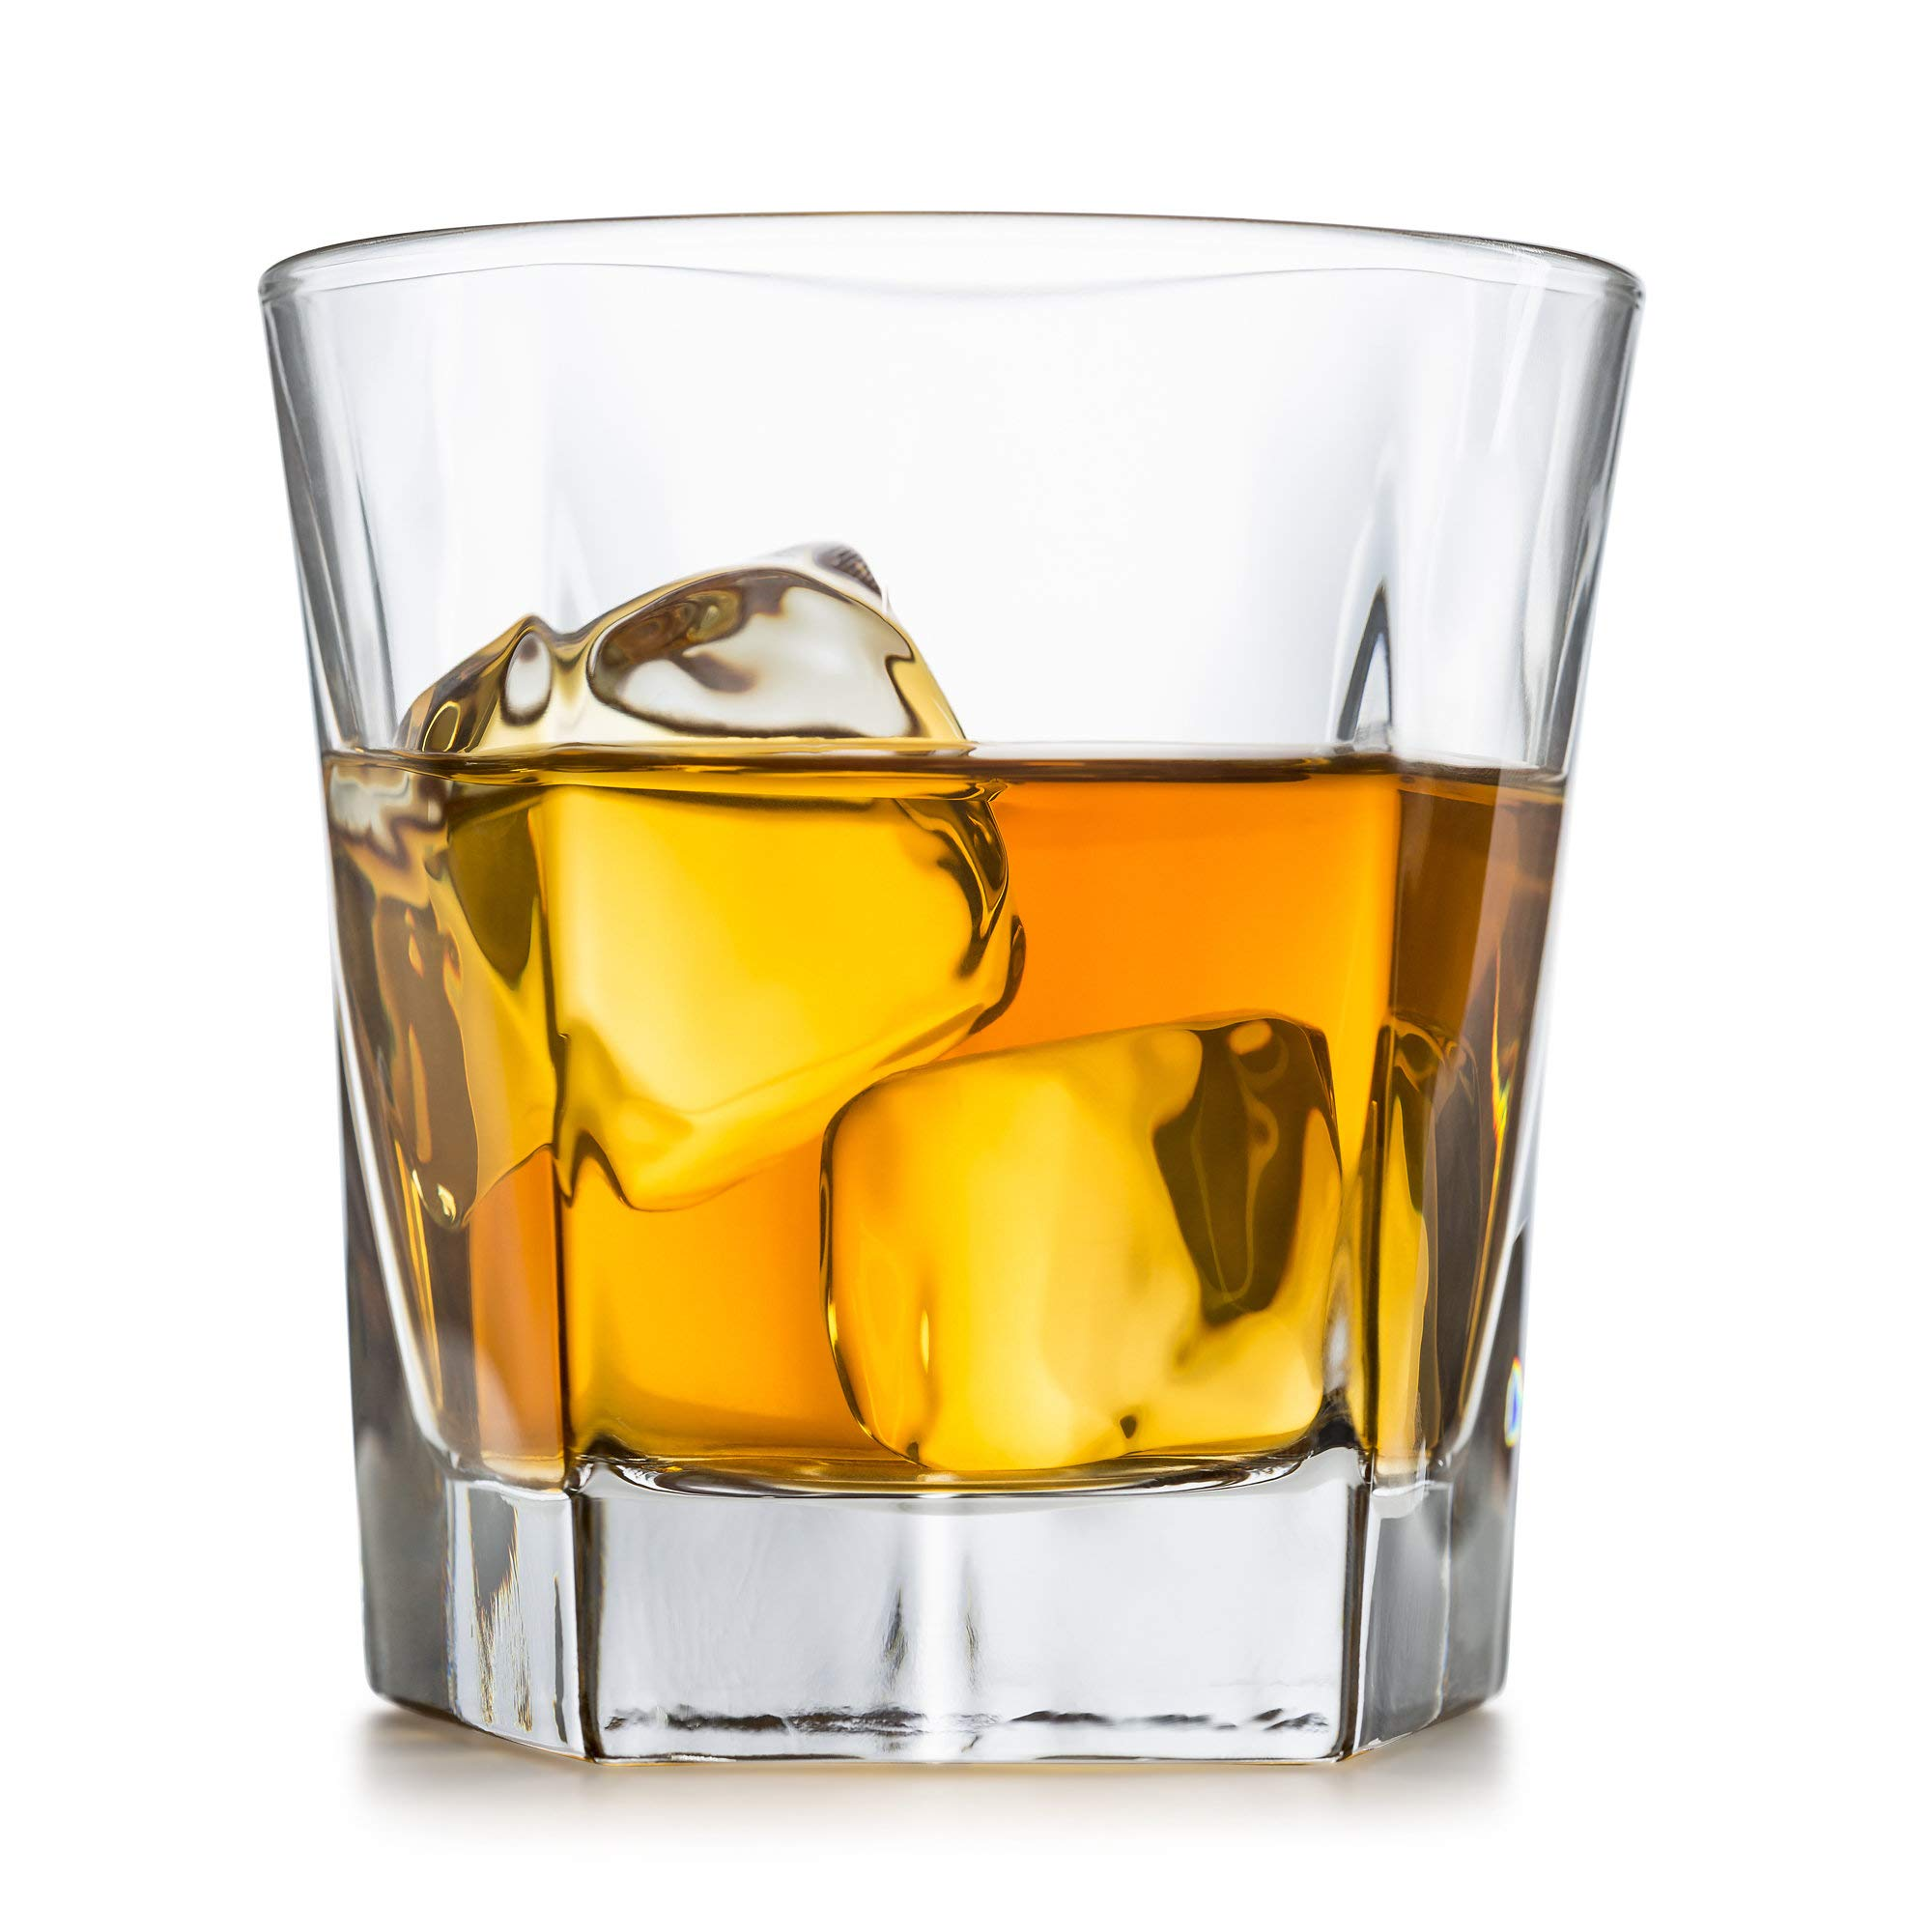 Whiskey Glasses, Set Of 2 – By Liquor Sip. Elegant Design- Large 12 oz Lead-free Tumblers- best glass cups for scotch or bourbon -10 Bonus Refreshing Cocktail Recipes enclosed in a stylish gift box by Liquor Sip (Image #4)